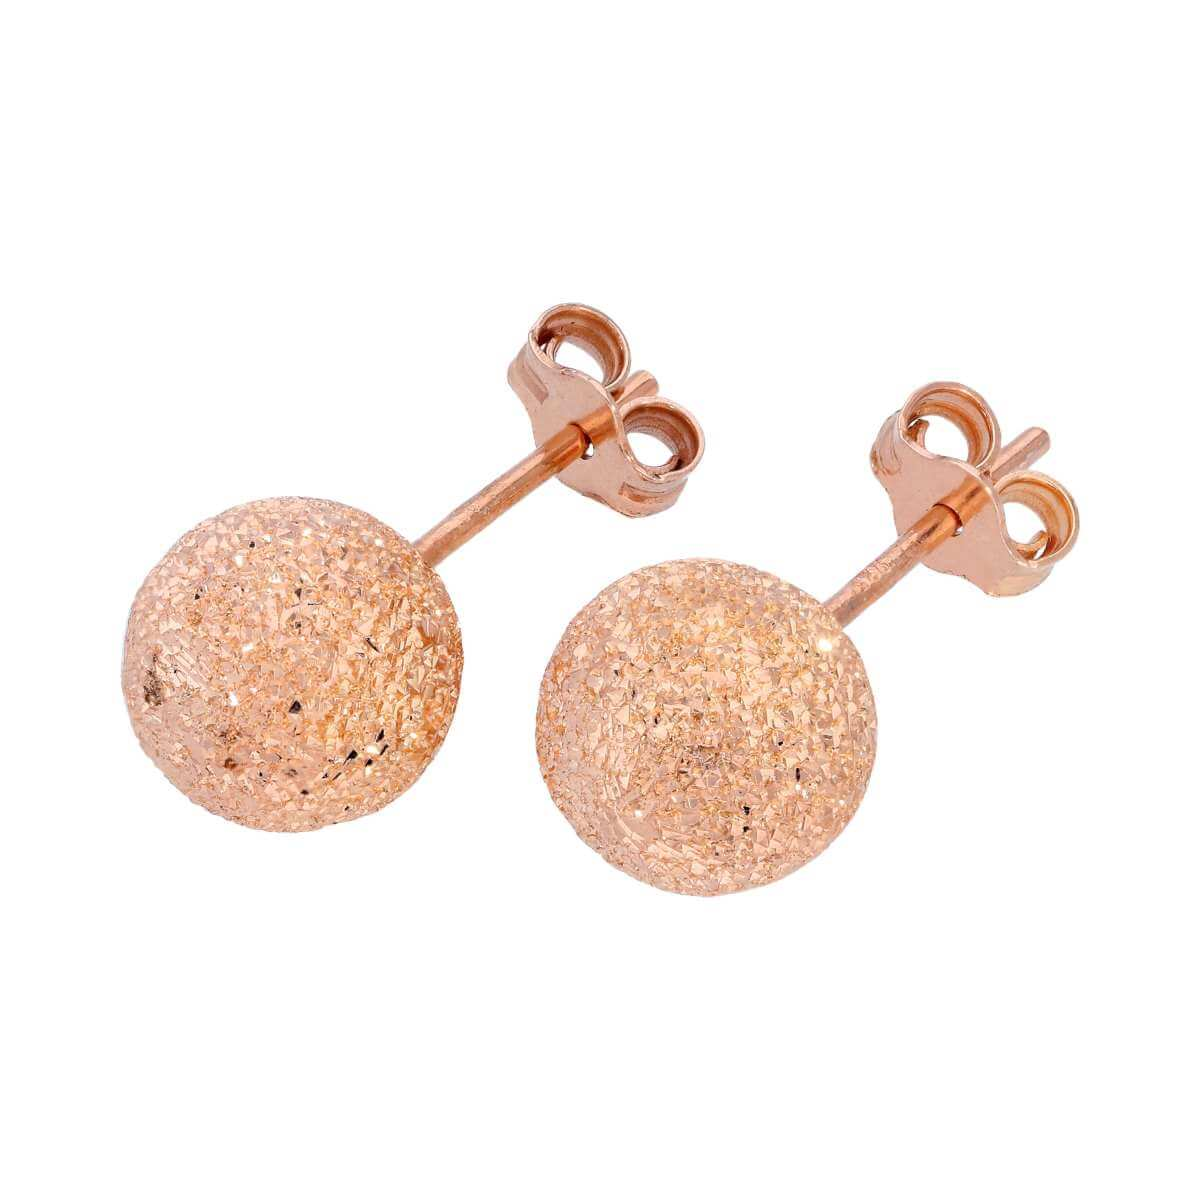 4a4bfac69 Rose Gold Dipped Frosted Sterling Silver Ball Stud Earrings 8mm